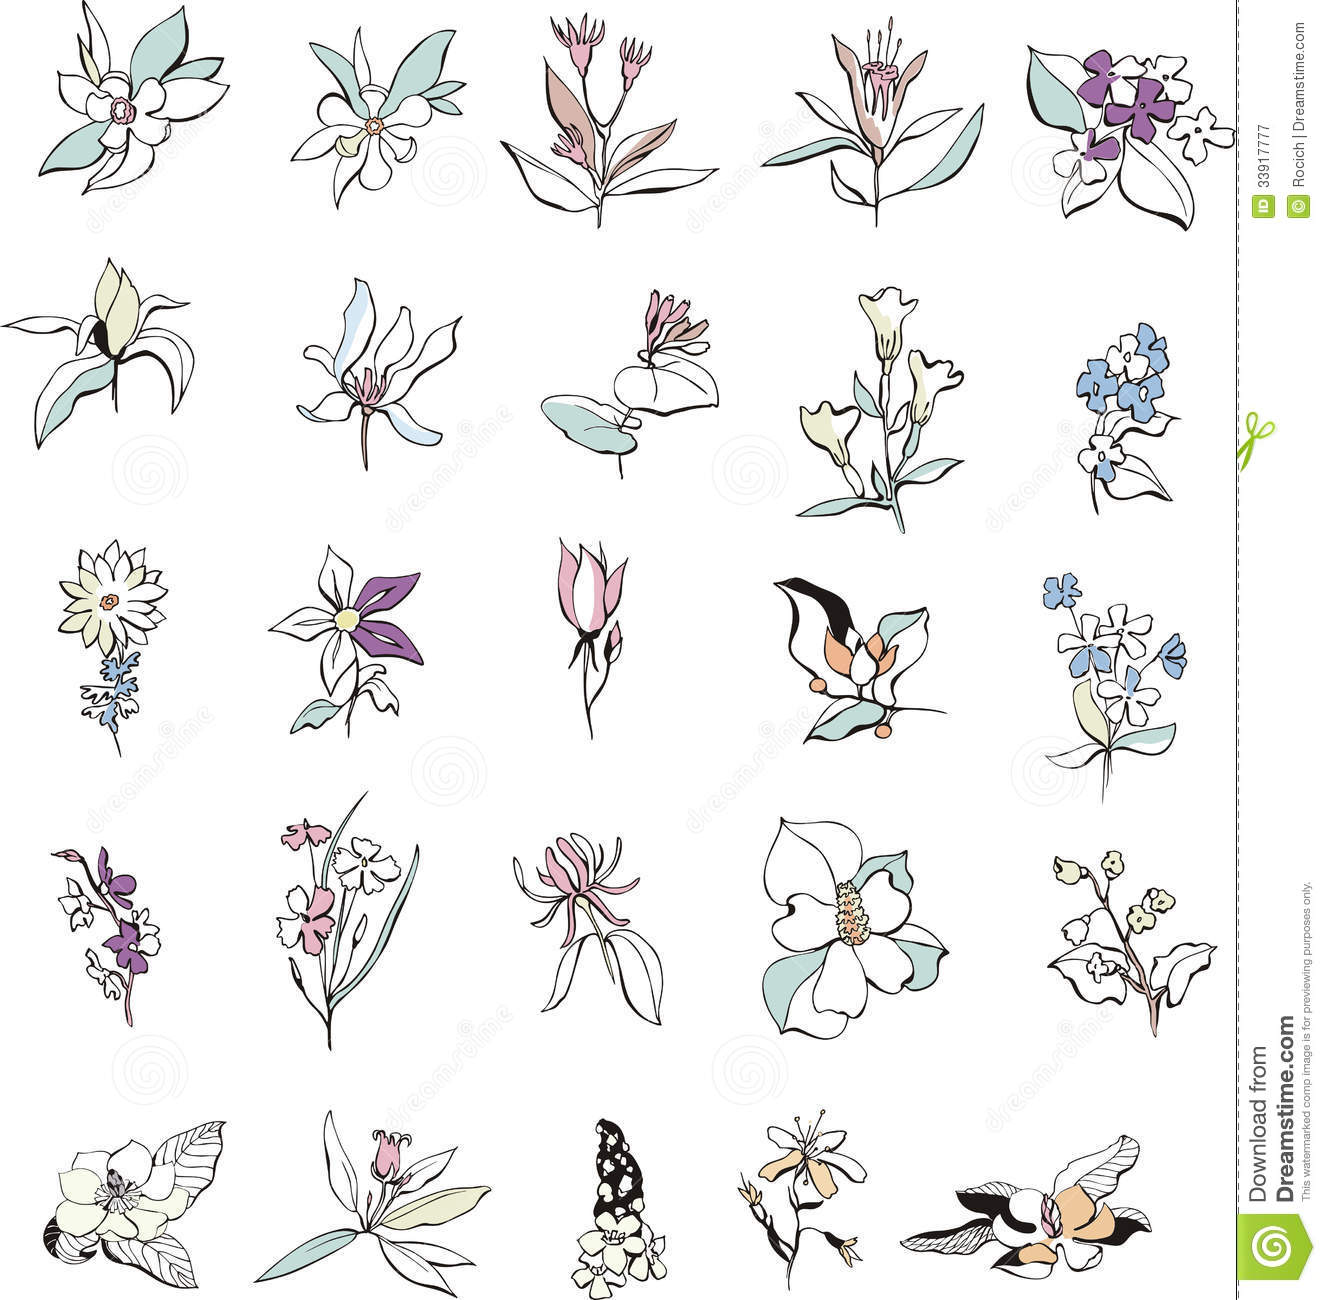 Simple Flower Sketches Royalty Free Stock Photography